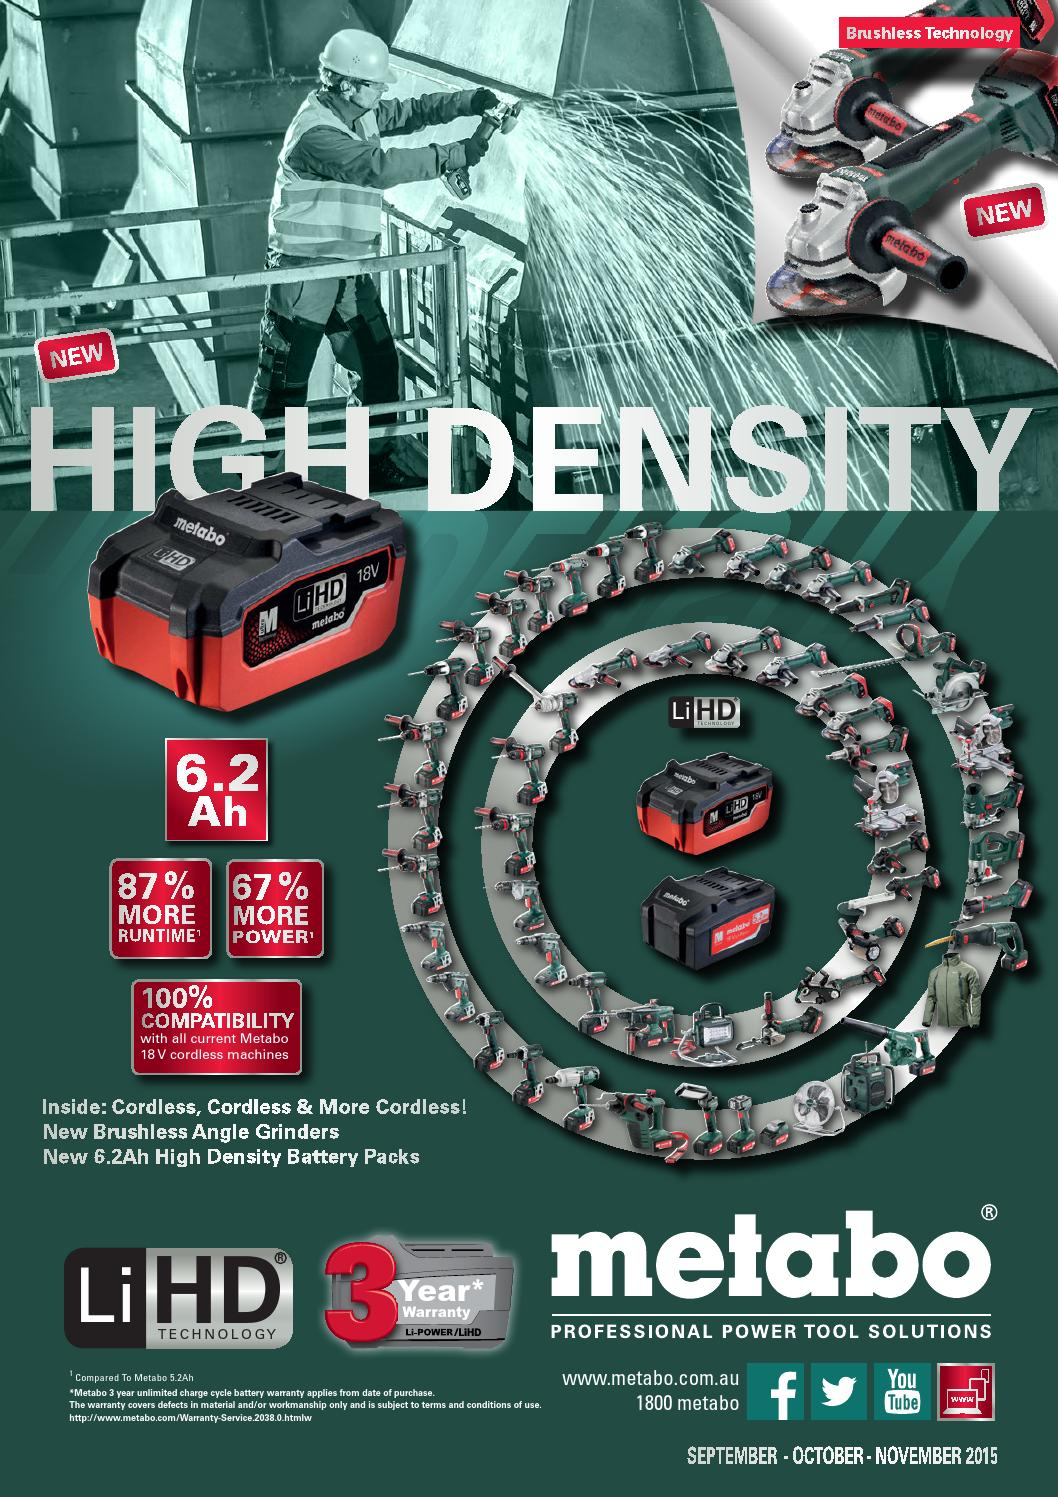 Metabo Australia Promo Sept Oct Nov 15 Online By Collins Tools Cordless Angle Grinder W18 Ltx 125 Welding Supplies Pty Ltd Issuu